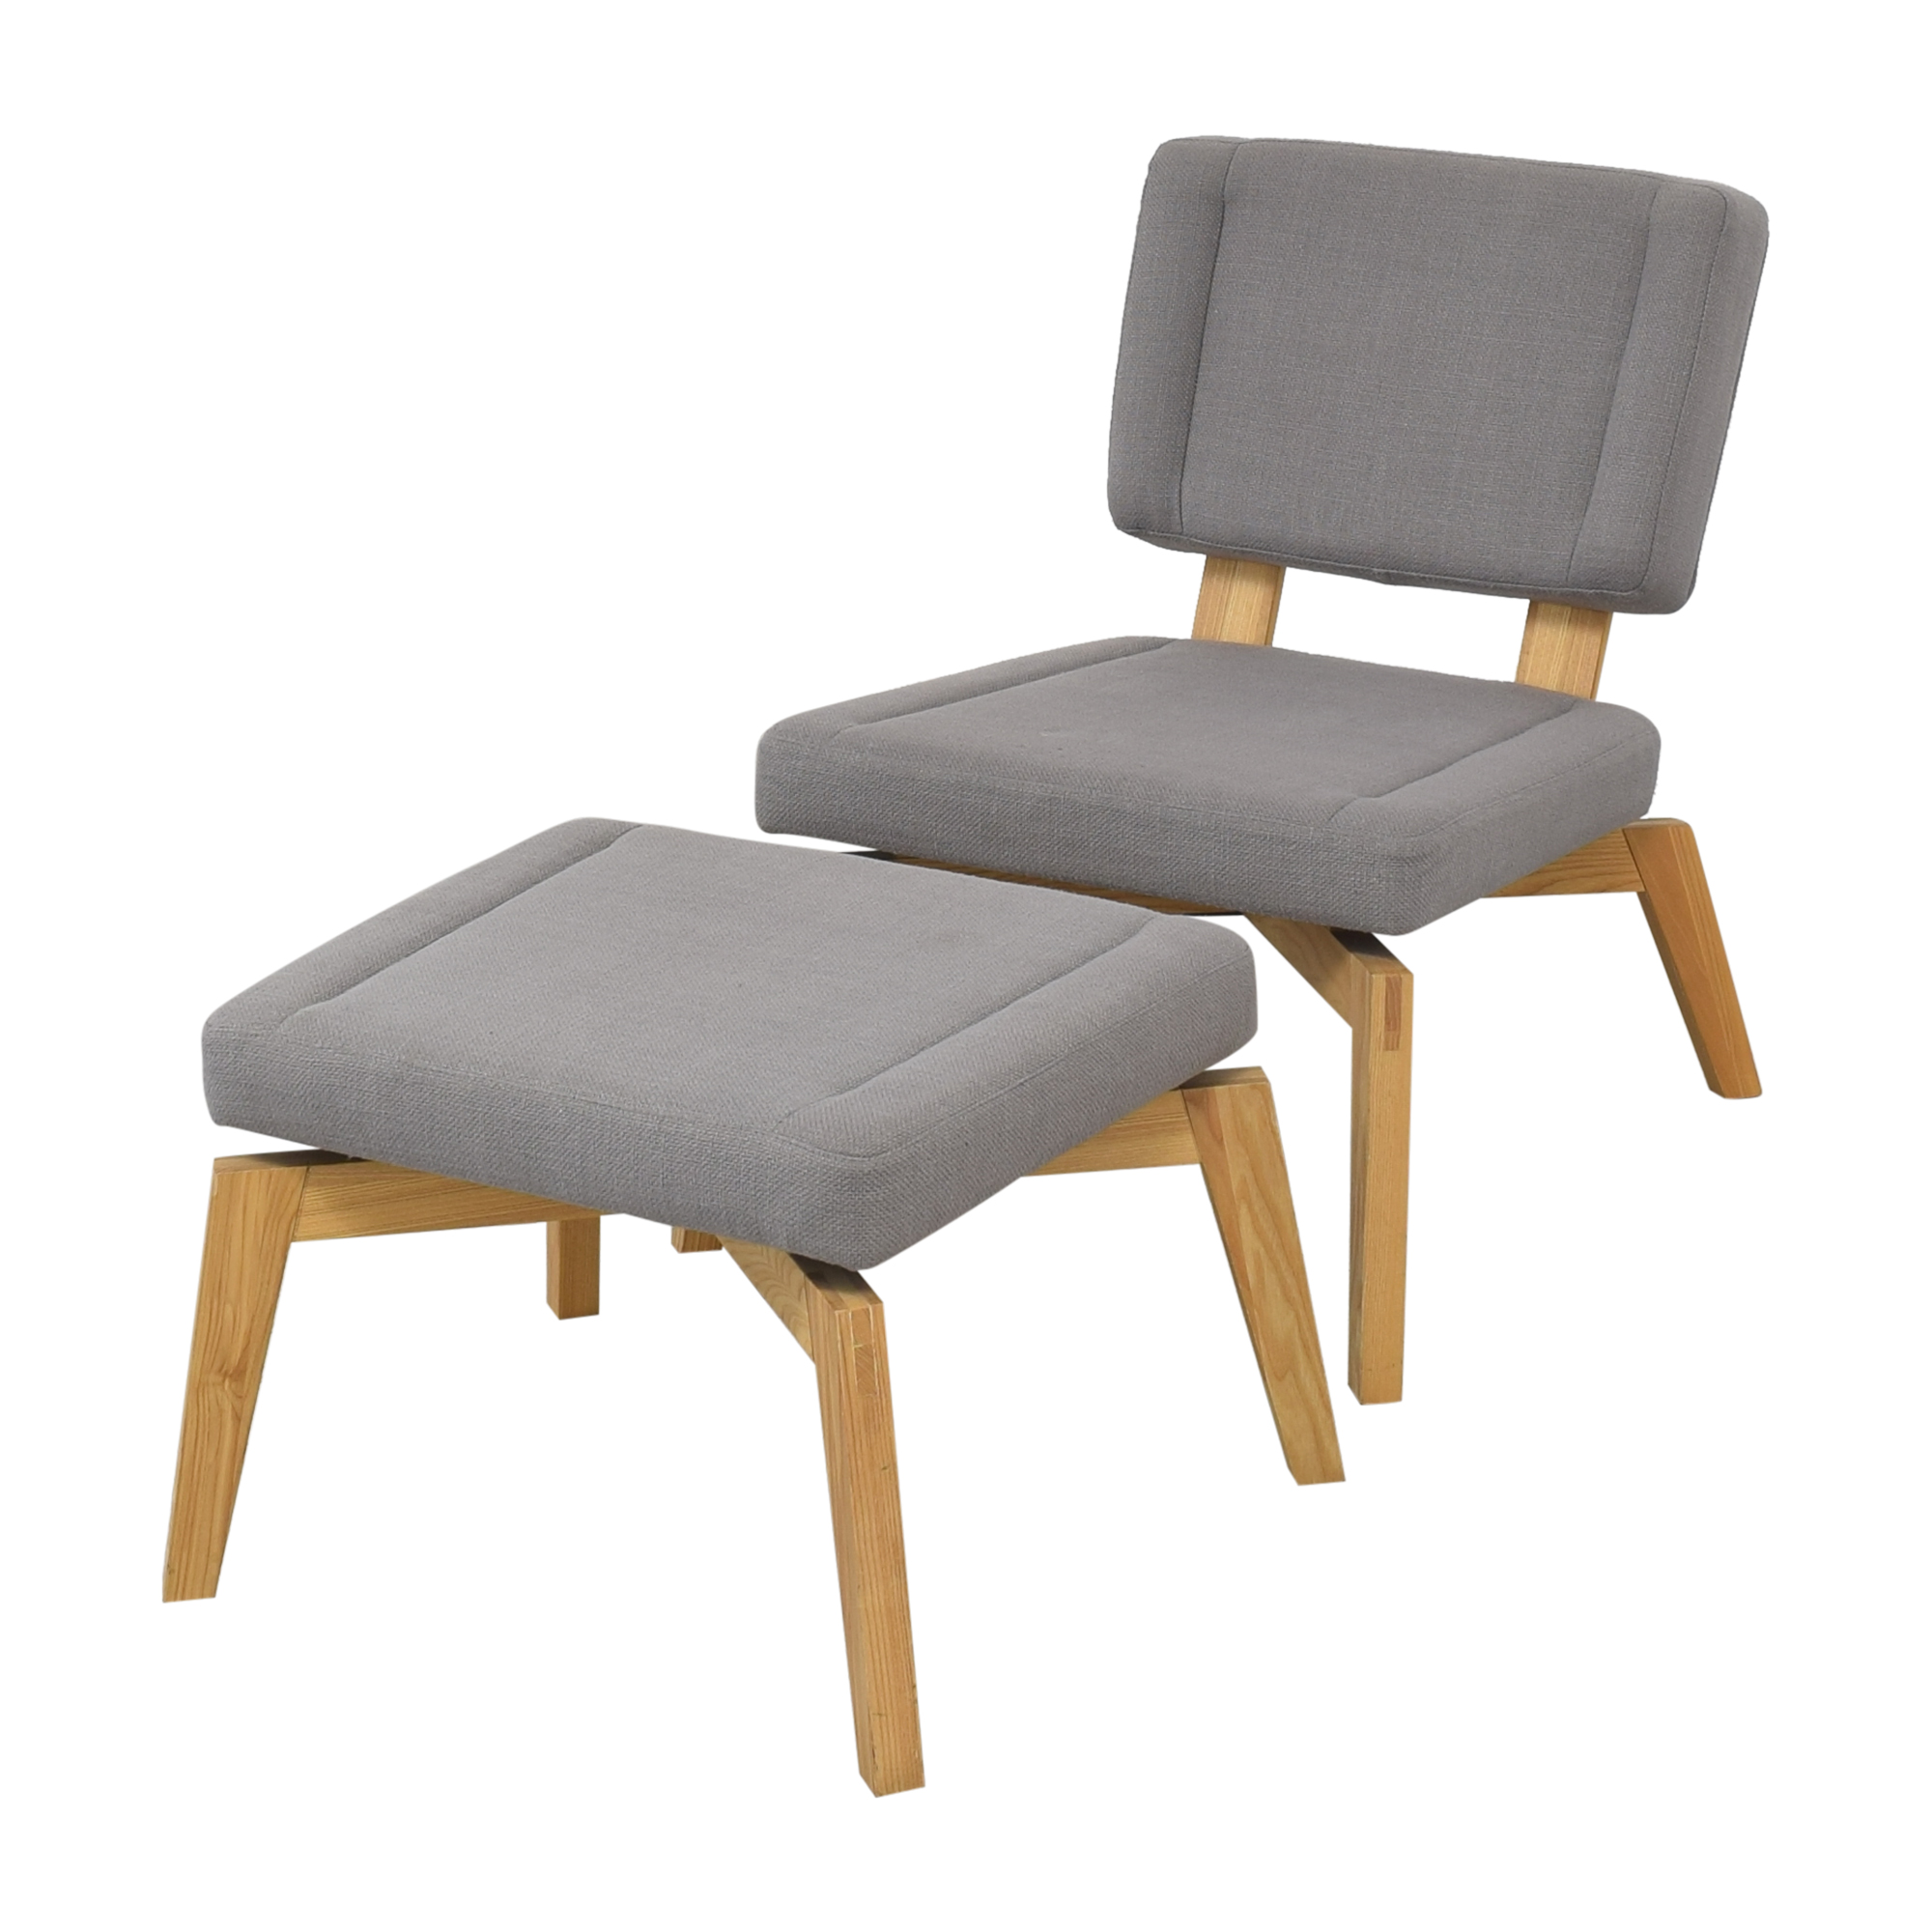 CB2 Lounge Chair with Ottoman sale